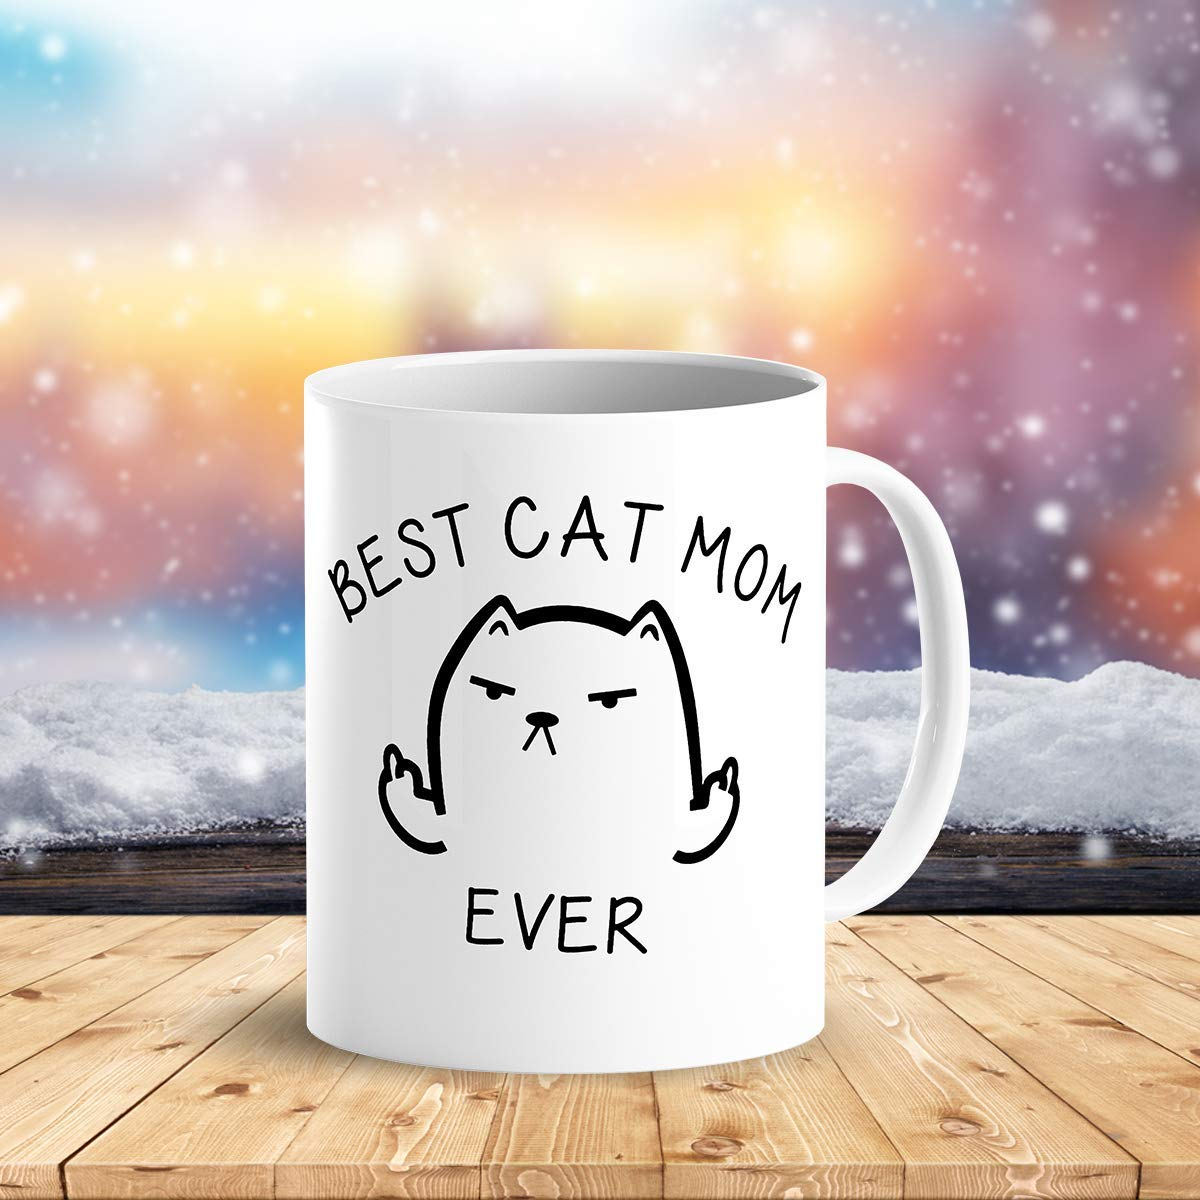 Best Cat Mom Ever Funny Coffee Mug Cat Middle Finger 11 Oz Birthday Gift For MotherMom Or Wife B079FRN7MM 5